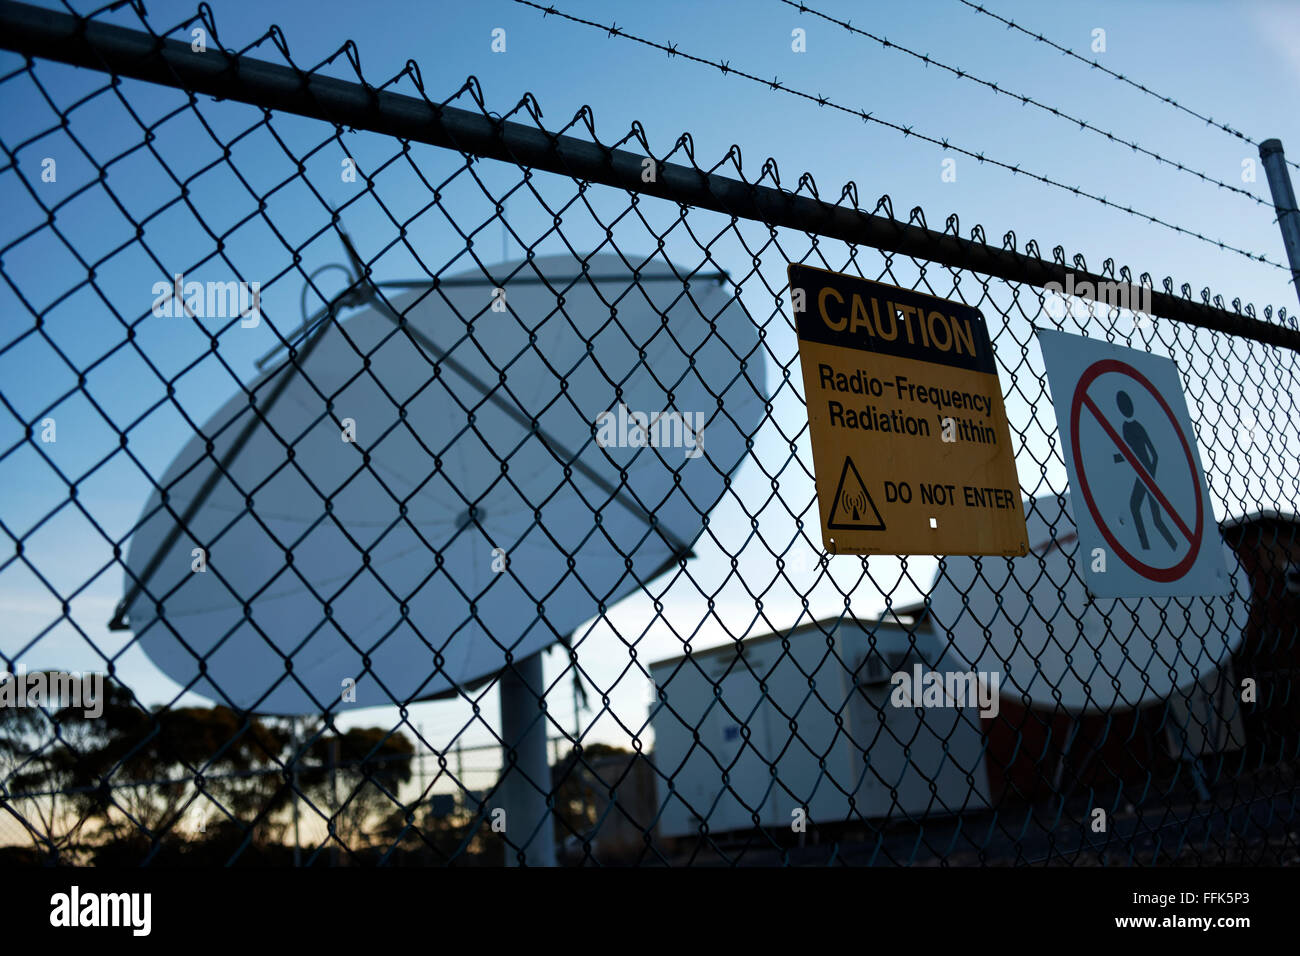 Sign On Wire Fence Stock Photos & Sign On Wire Fence Stock Images ...